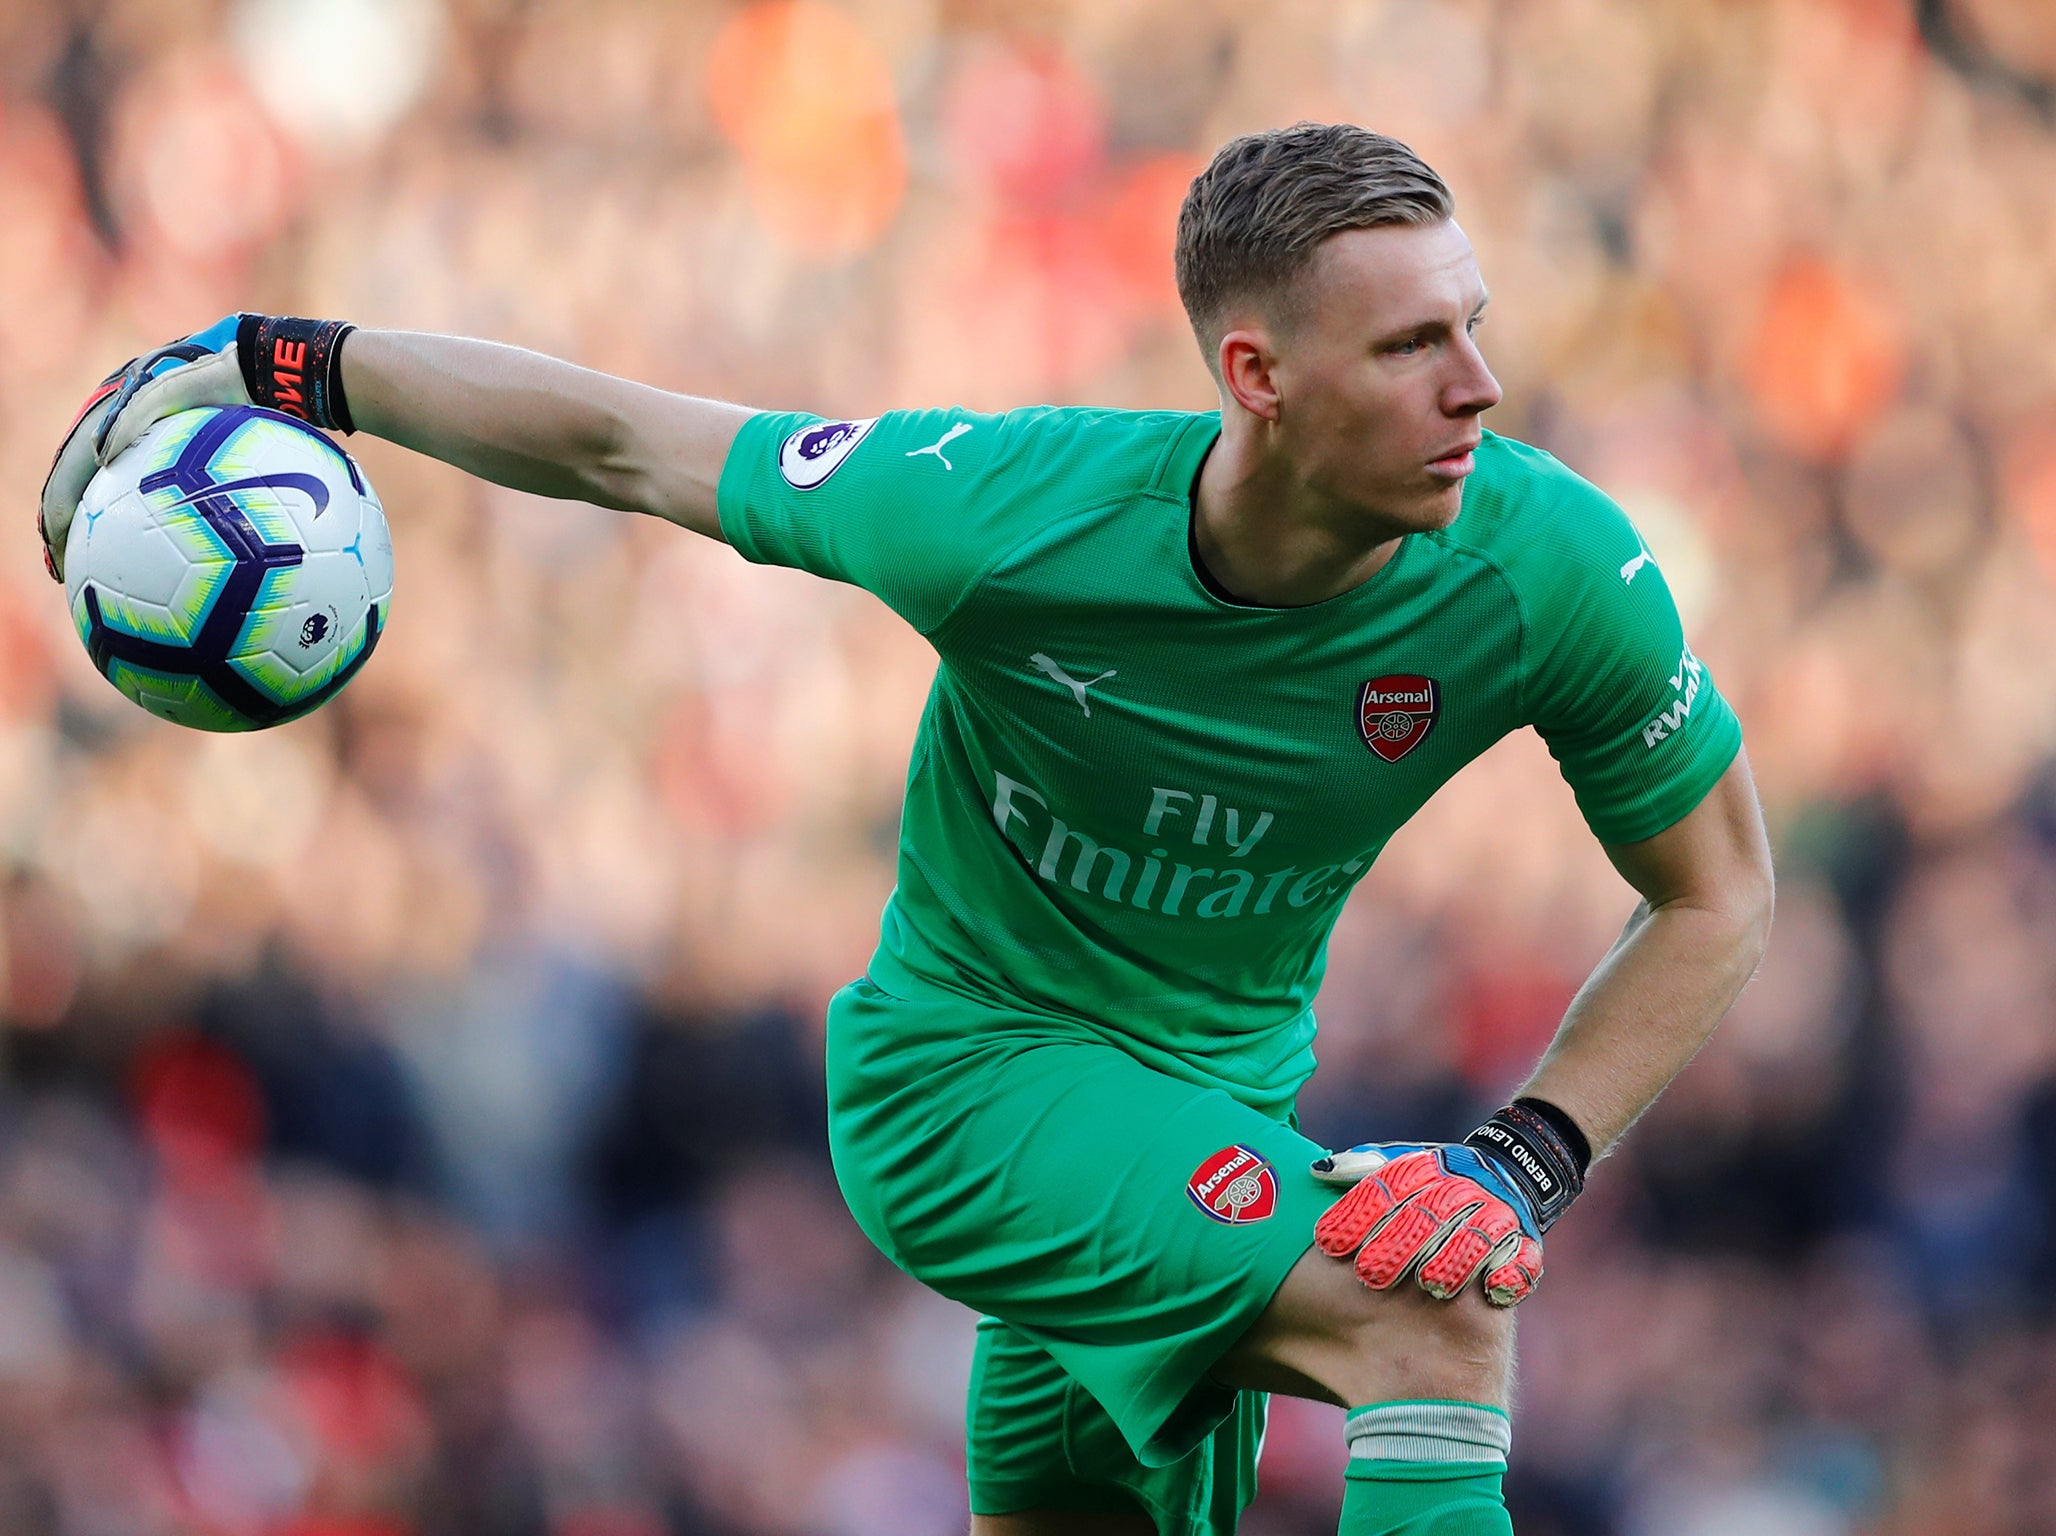 Arsenal Goalkeeper Bernd Leno After Man Utd Win: 'I Have